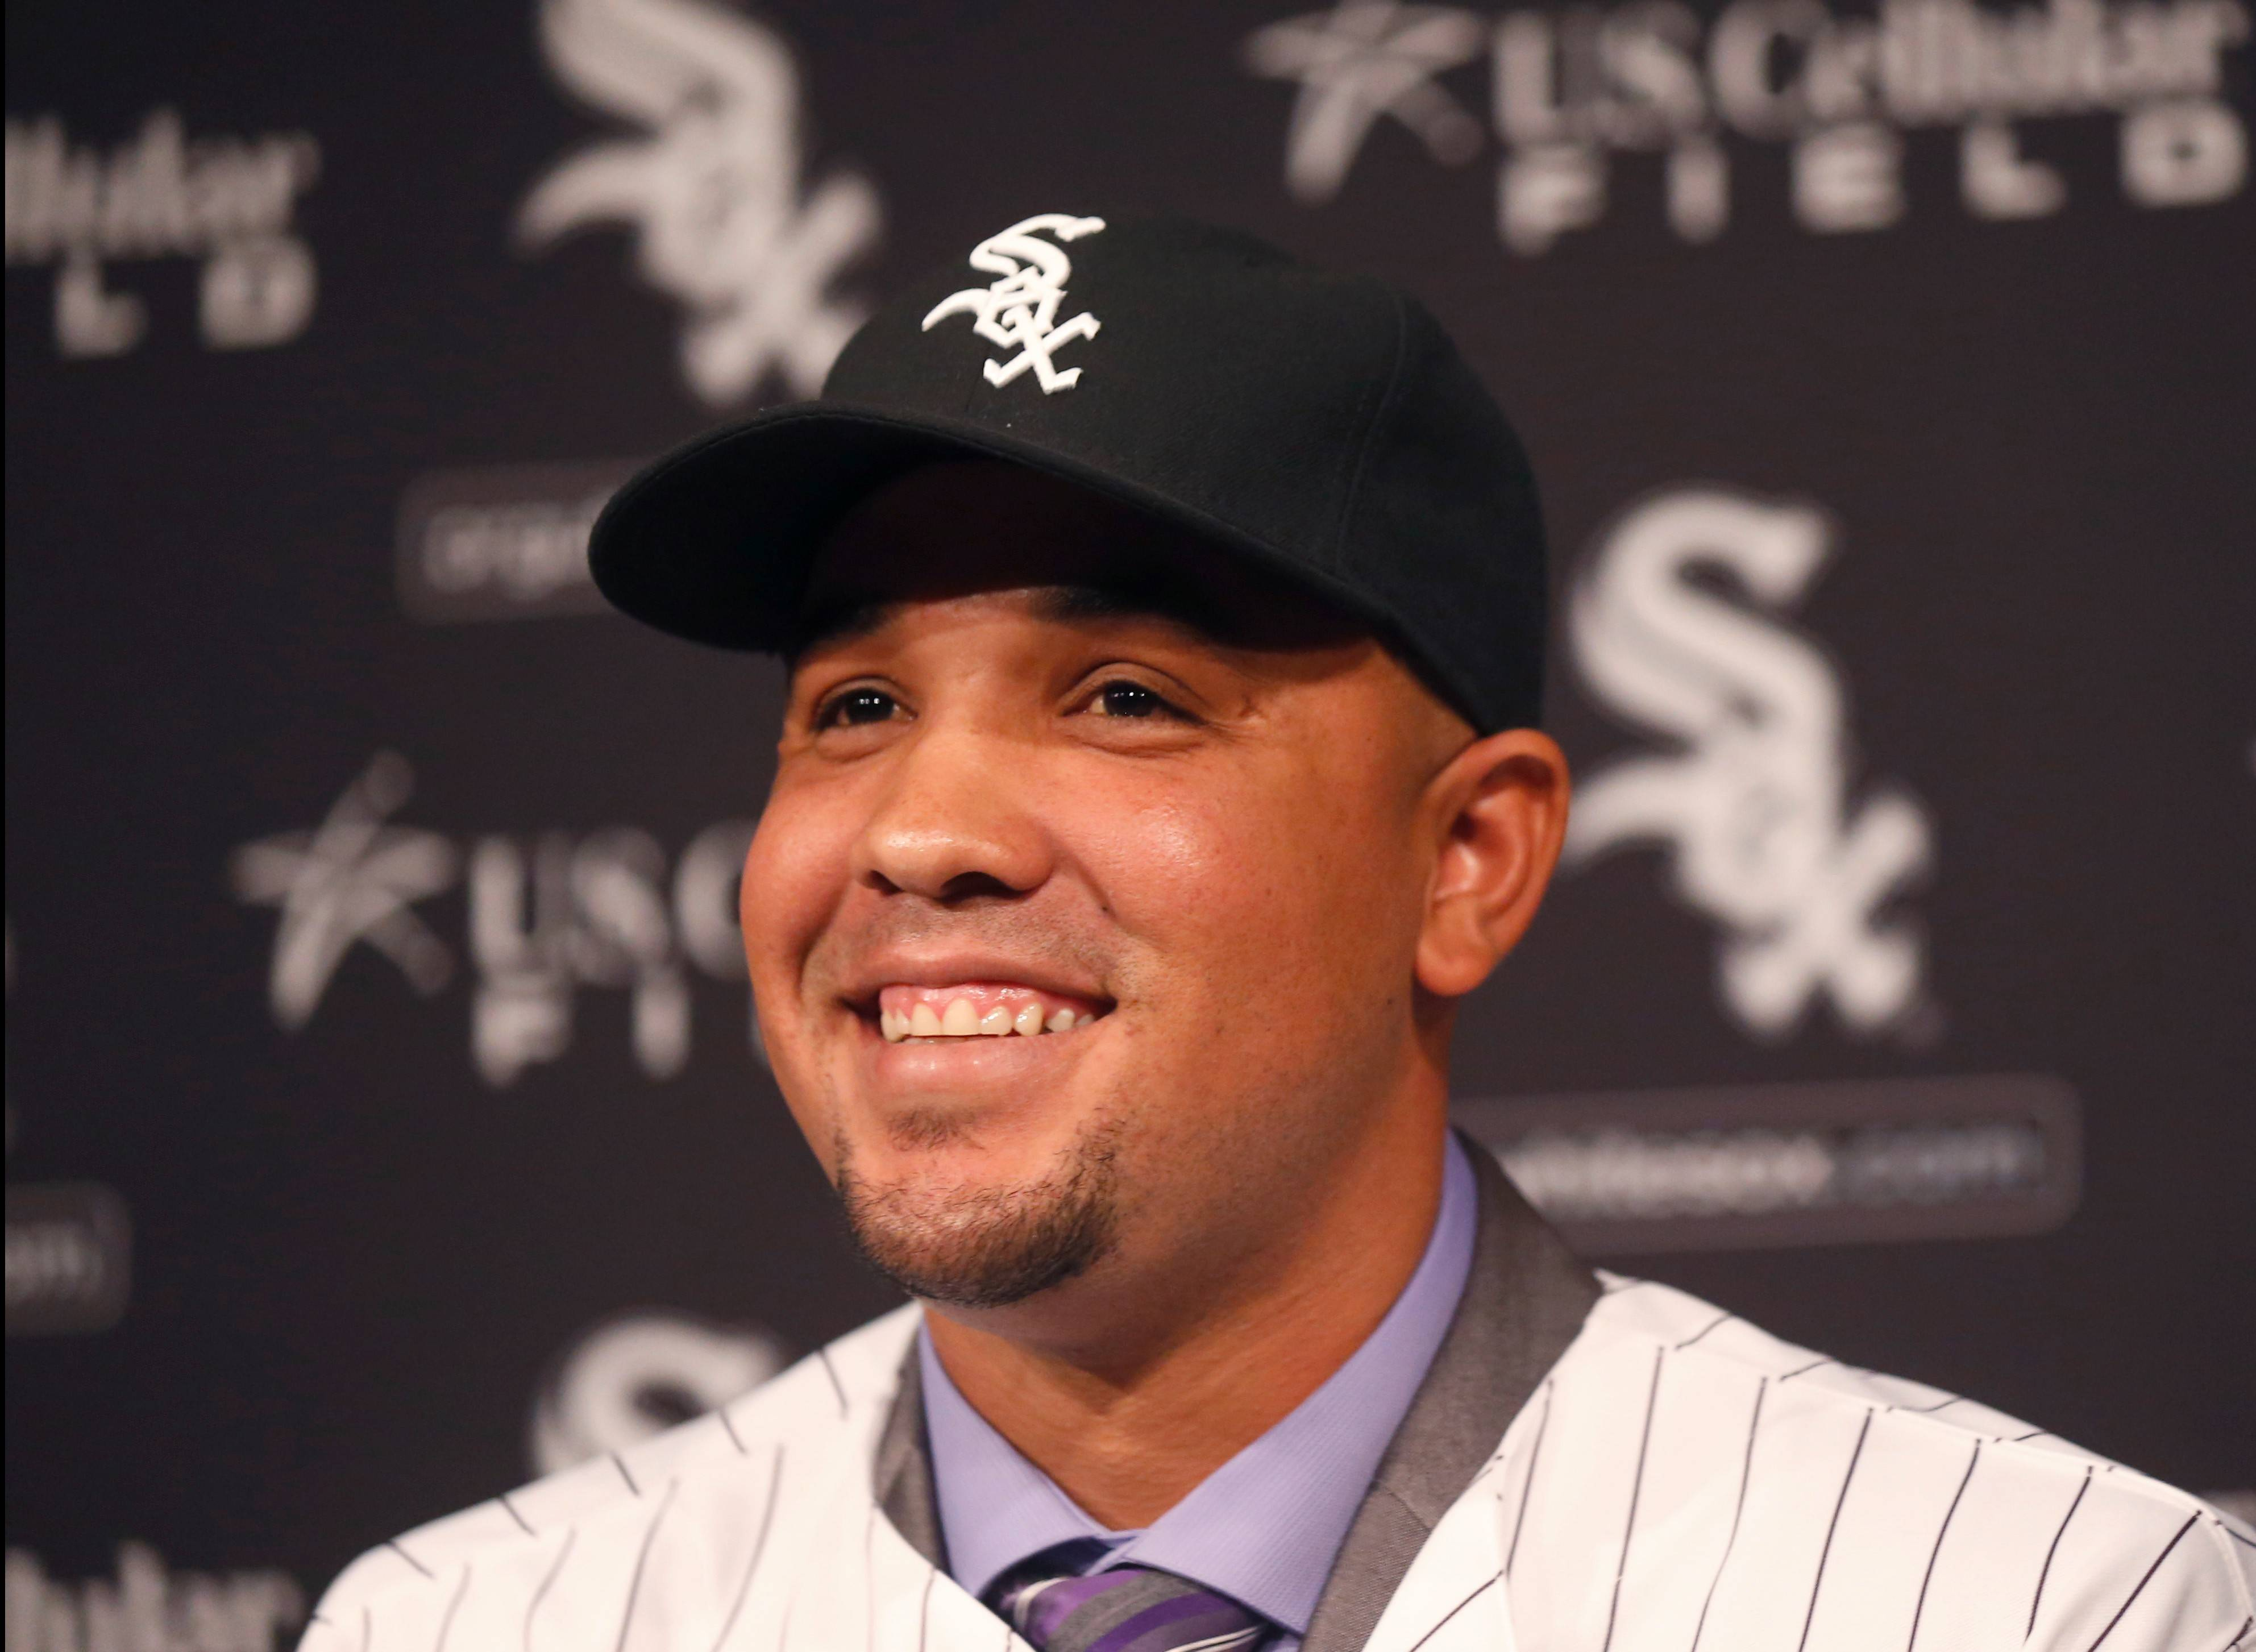 Upon arriving in Chicago, Cuban slugger Jose Abreu said his primary goal is working hard and producing for the White Sox on the field as their new first baseman.